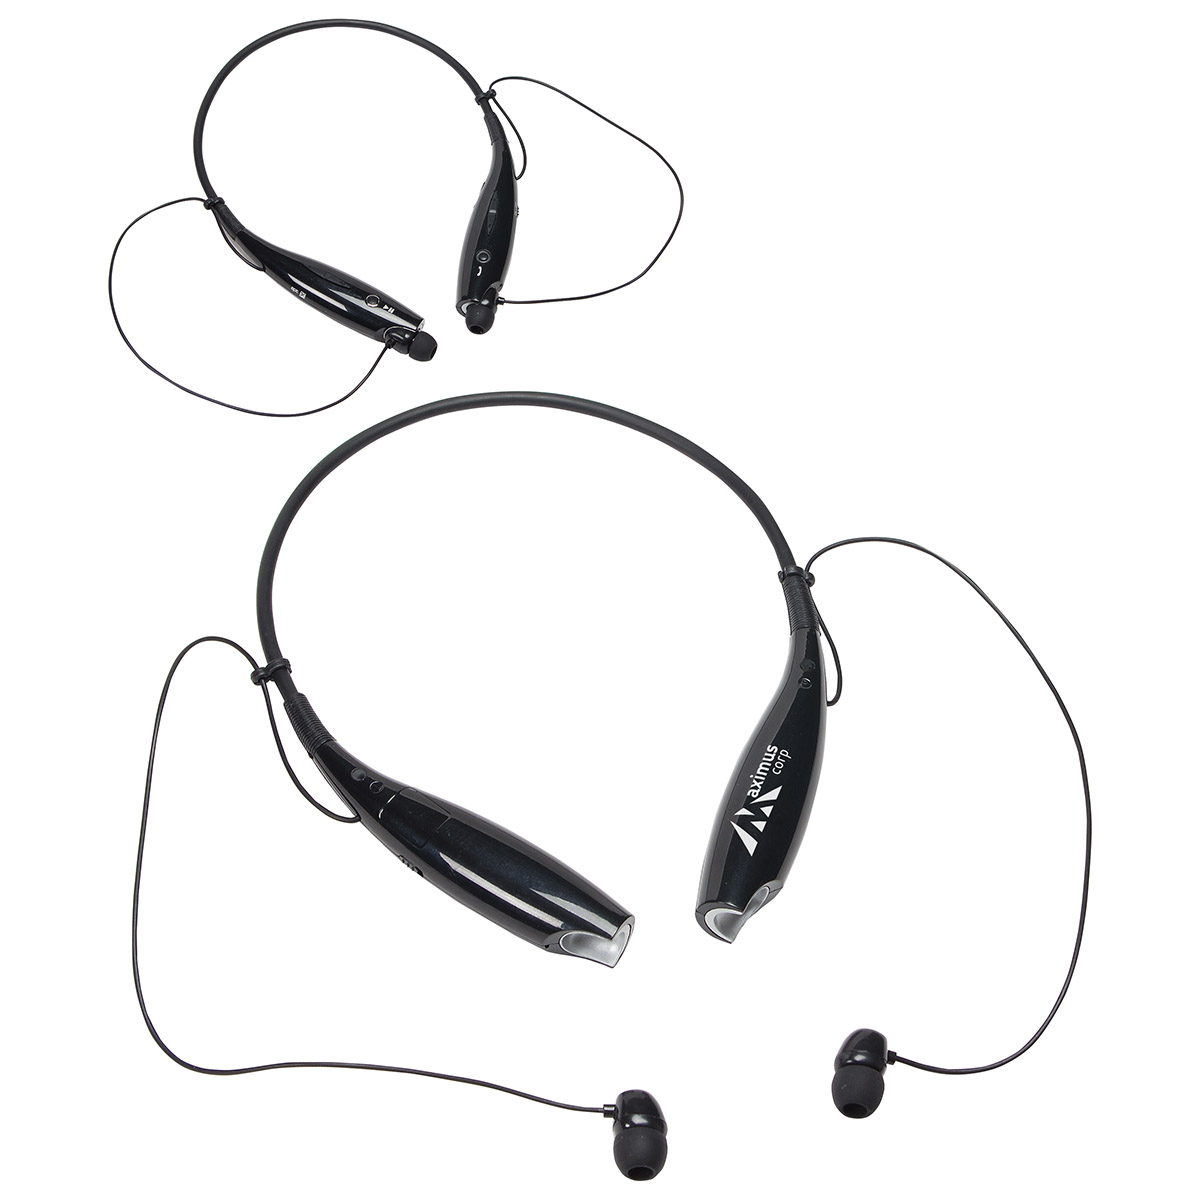 Easy Flex Wireless Headset, ETV-EF17, 1 Colour Imprint